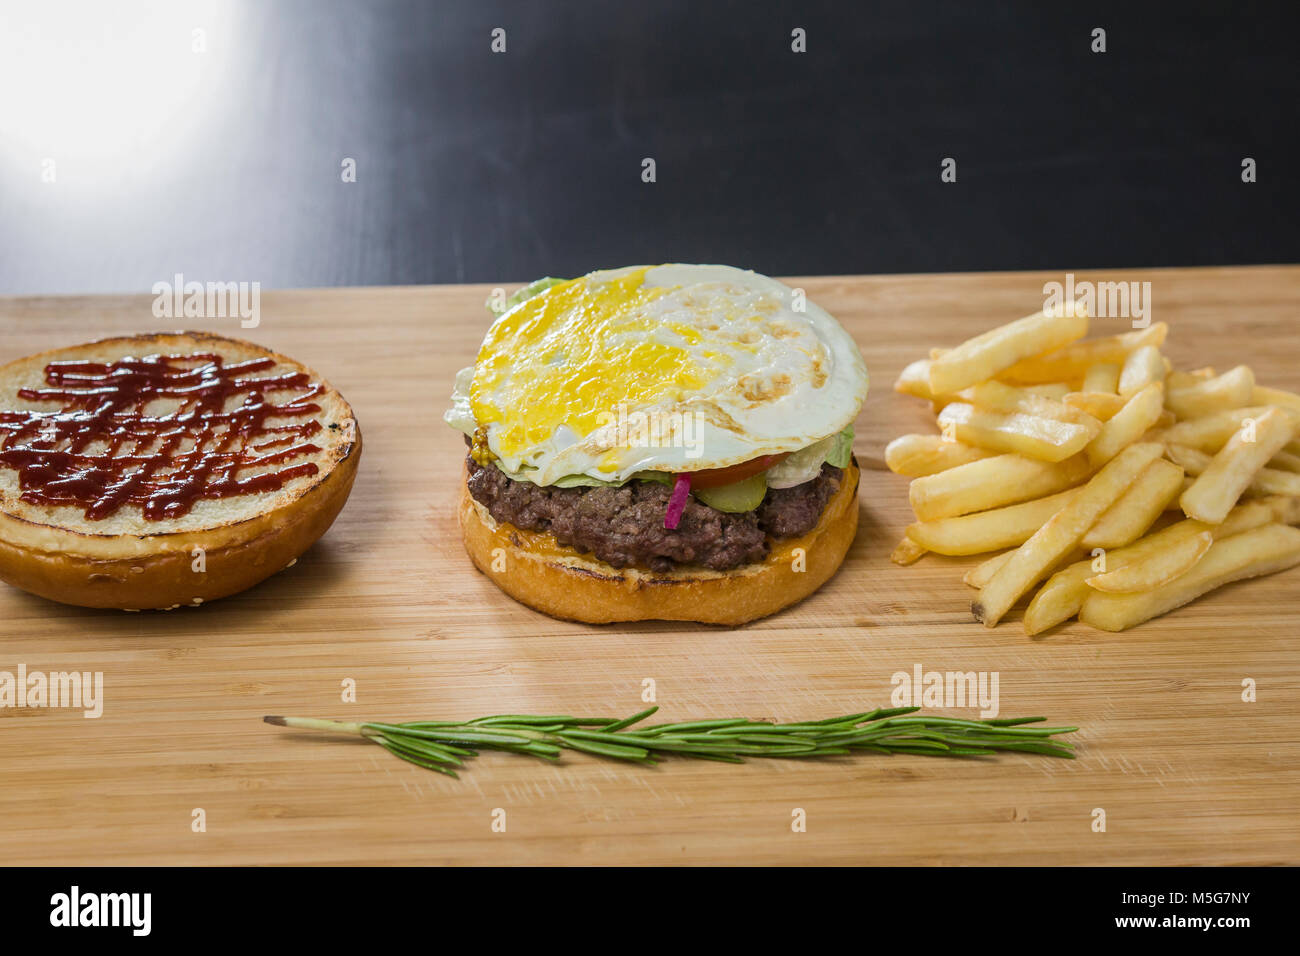 Uncovered tasty burger on the table - Stock Image